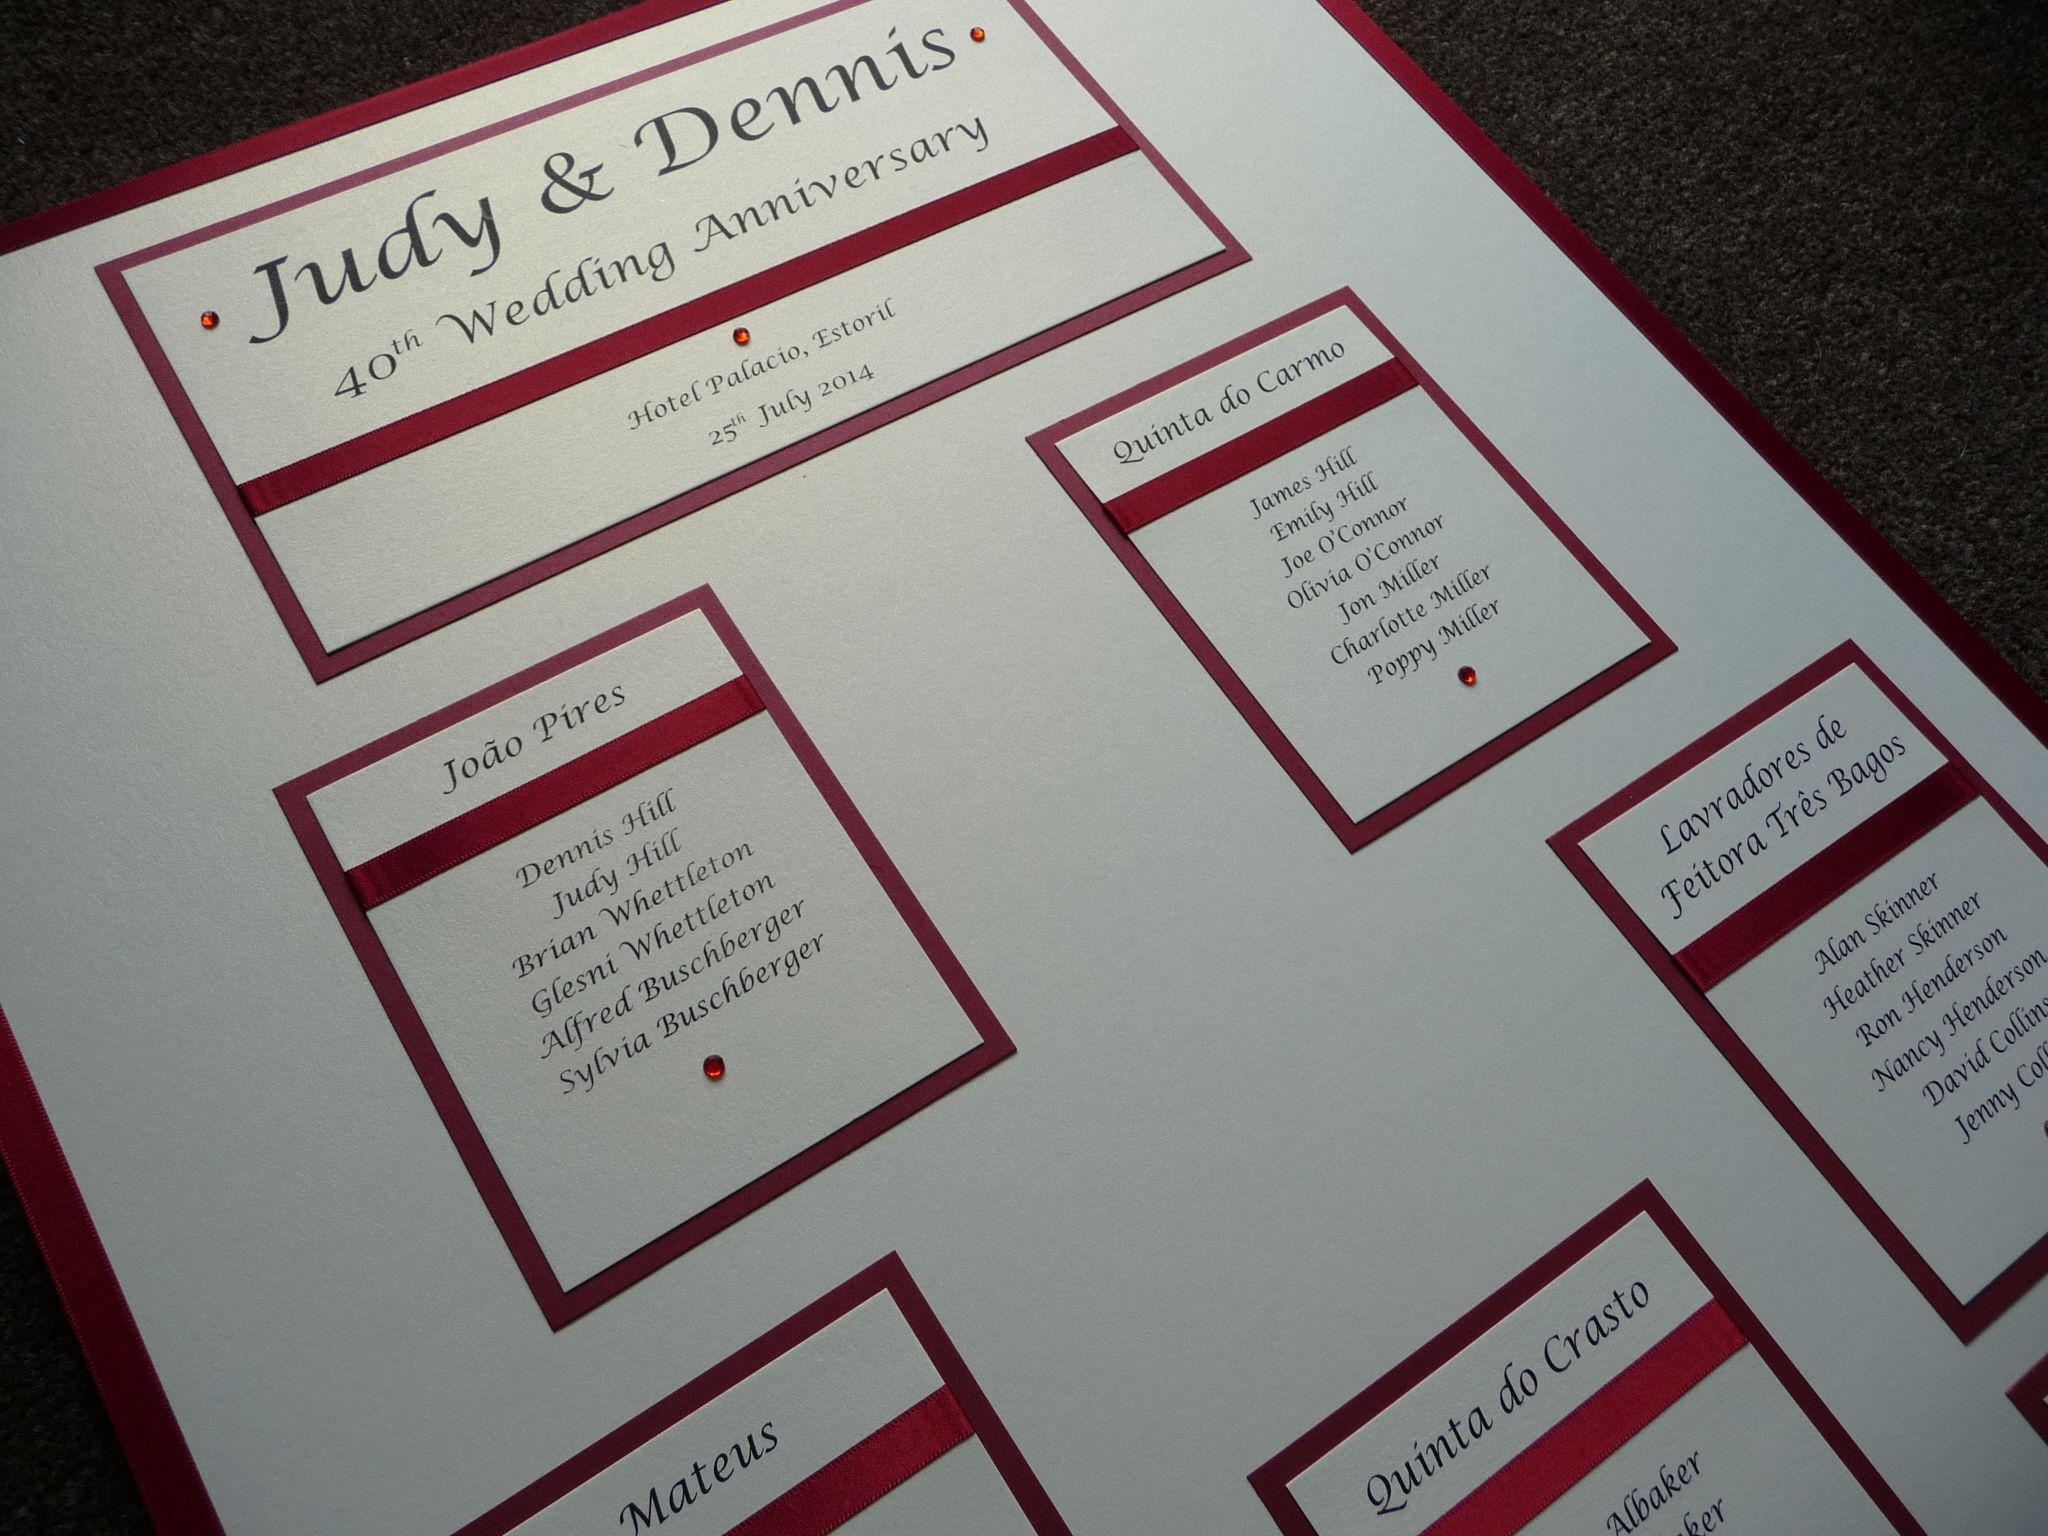 Th wedding anniversary ruby themed seating plan our table